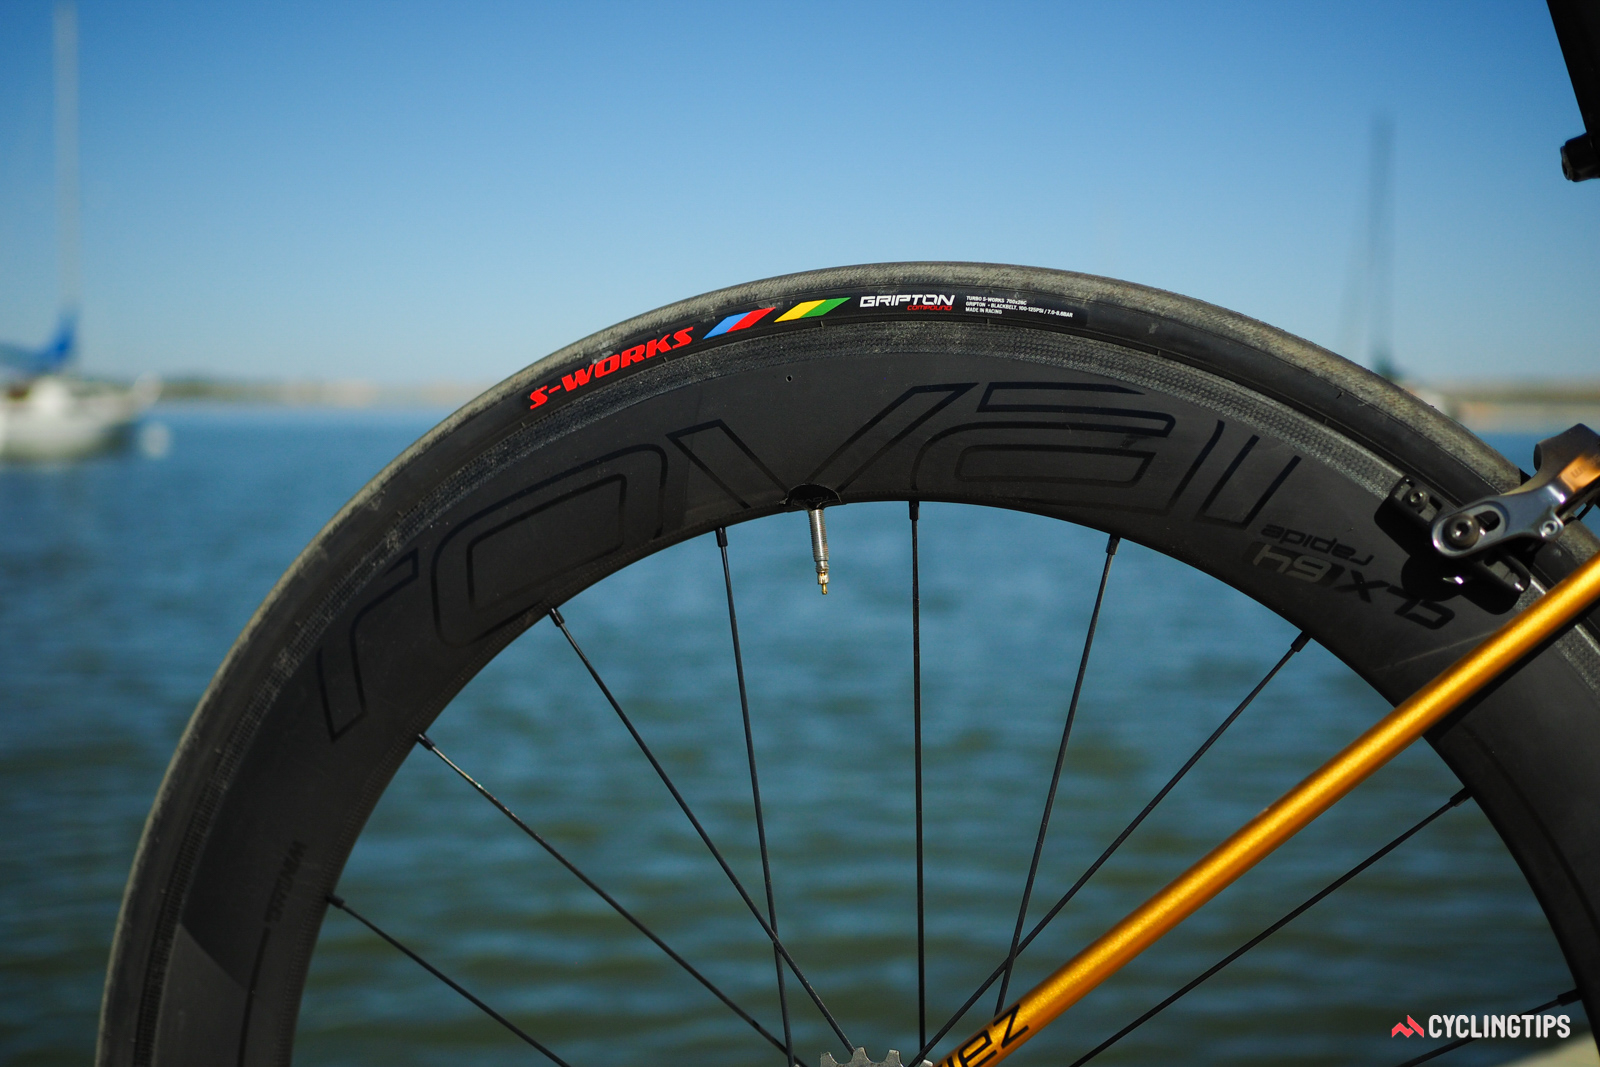 Once considered merely a house wheel brand for Specialized, Roval has now rightfully earned a spot among other premium options for road wheels. The aero-profile CLX 64 carbon clinchers use a 20.7mm internal width and 29.9mm external width to match with higher-volume rubber.